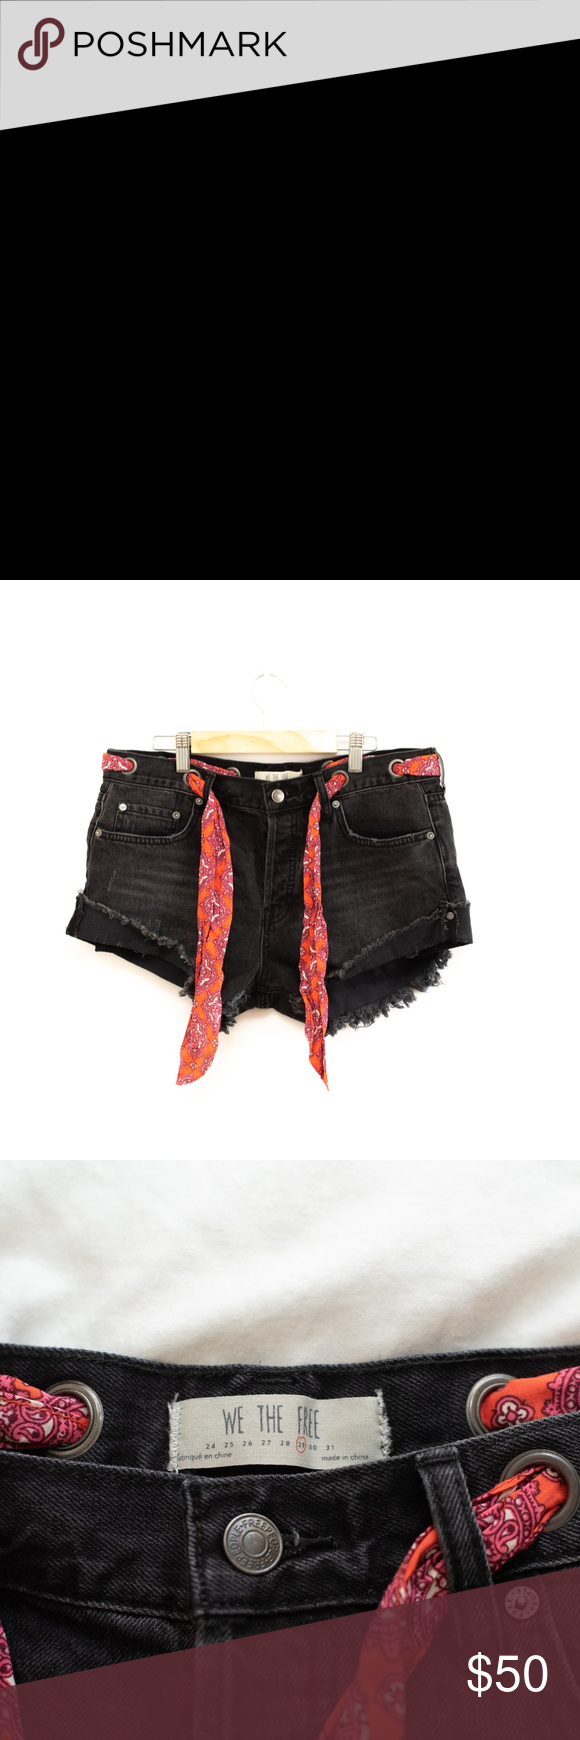 196f3fdcd4c WE THE FREE Free People Sashed   Relaxed Shorts WE THE FREE Free People  Sashed